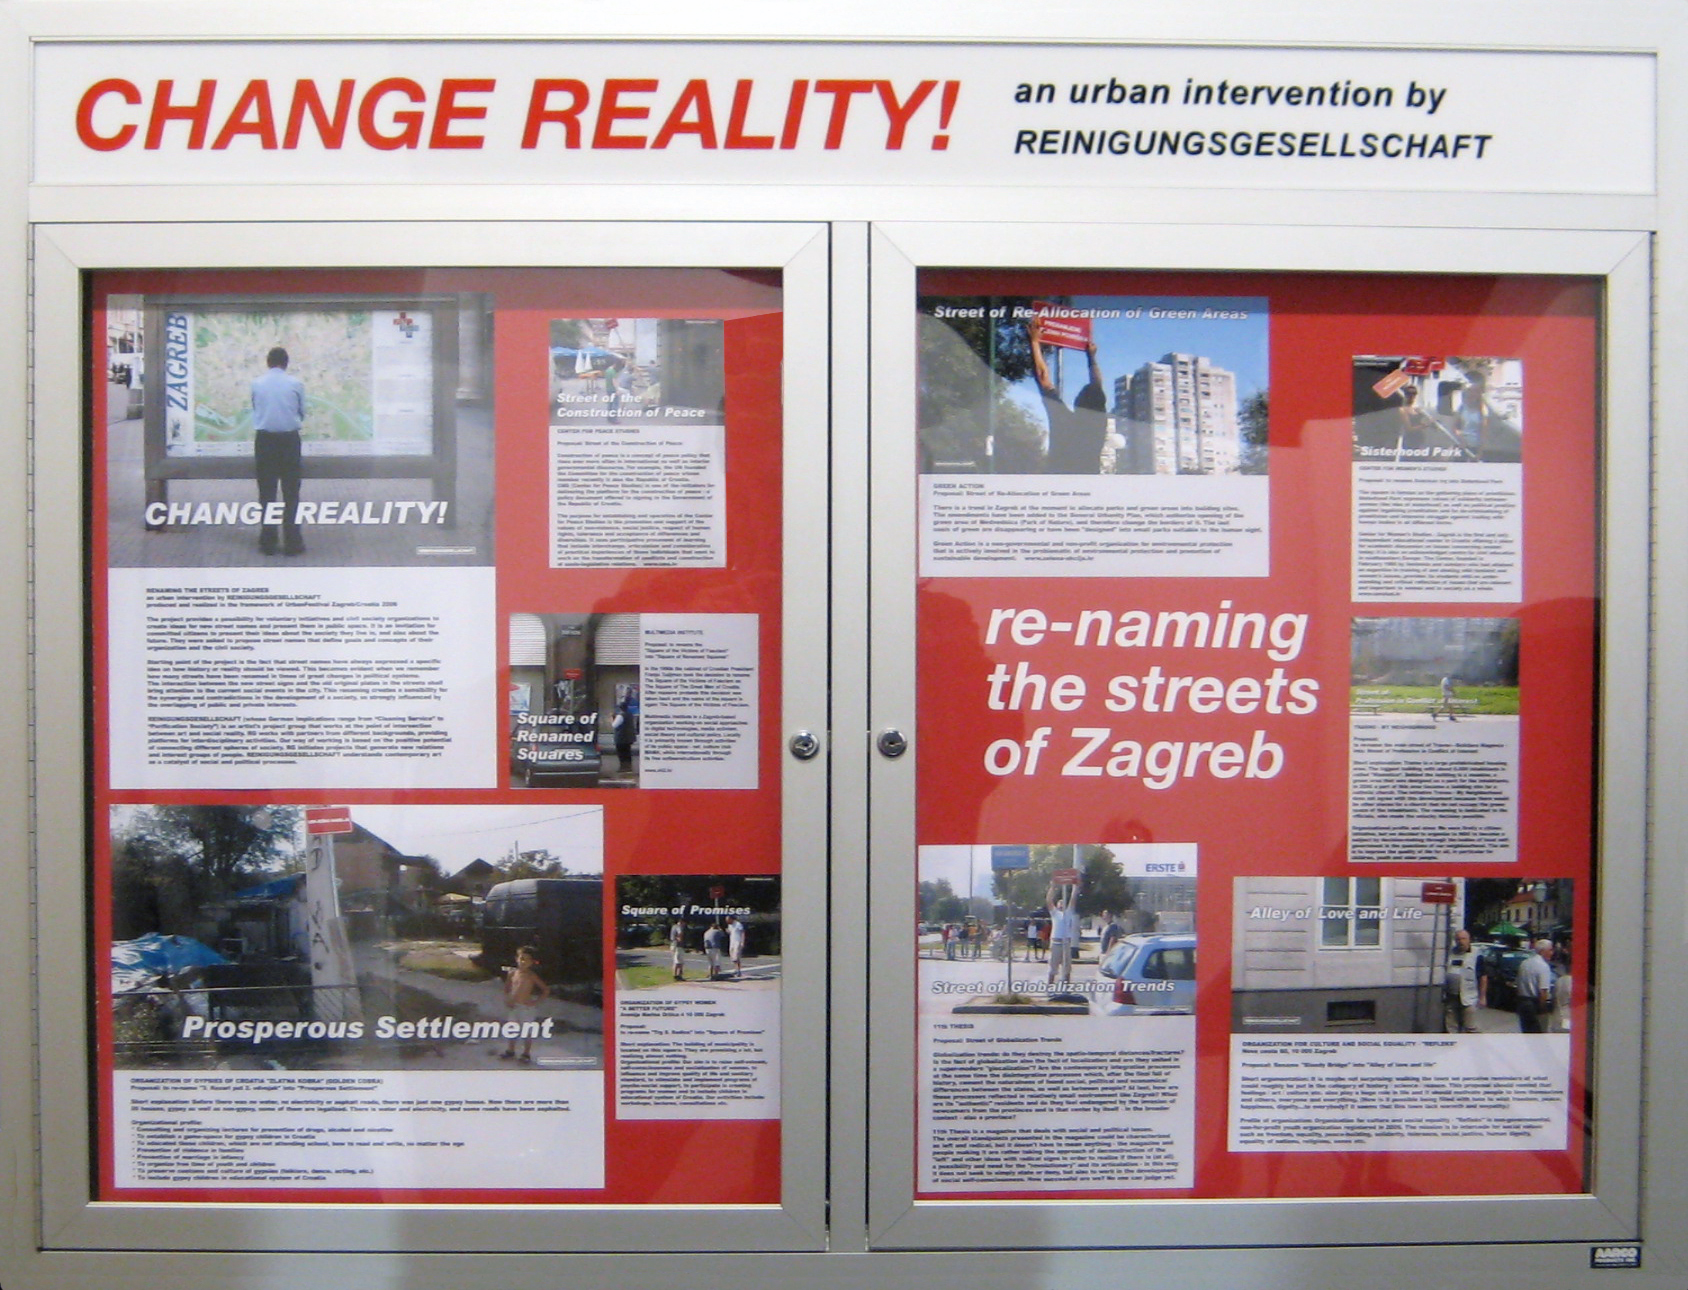 REINIGUNGSGESELLSCHAFT,  CHANGE REALITY! RENAMING THE STREETS OF ZAGREB , 2006; agencies propose new street names that reflect goals and concepts of their initiatives; produced for UrbanFestival Zagreb/Croatia